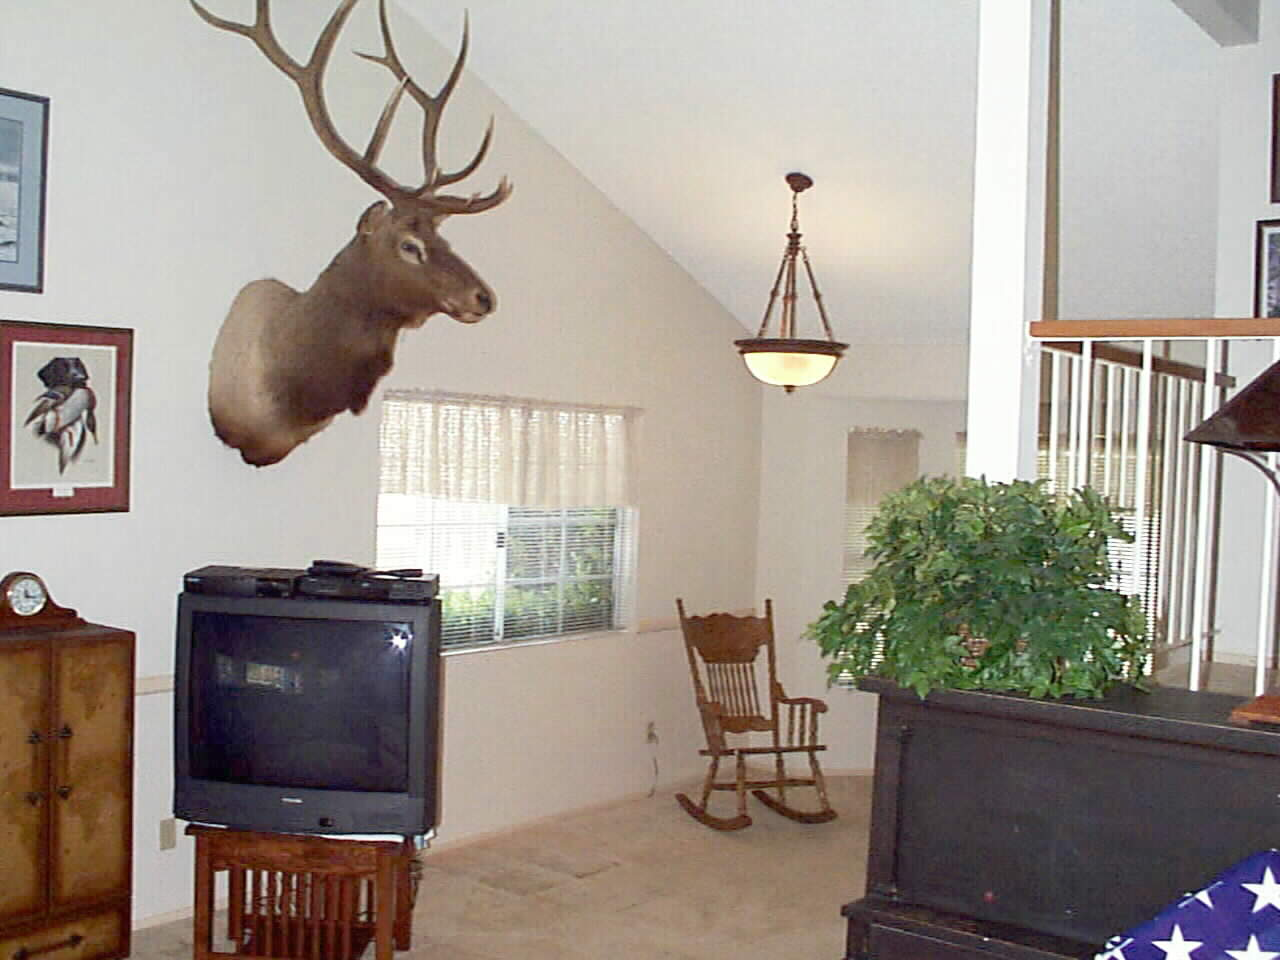 Dramatic High Vaulted Ceilings ... Bring your own Elk!